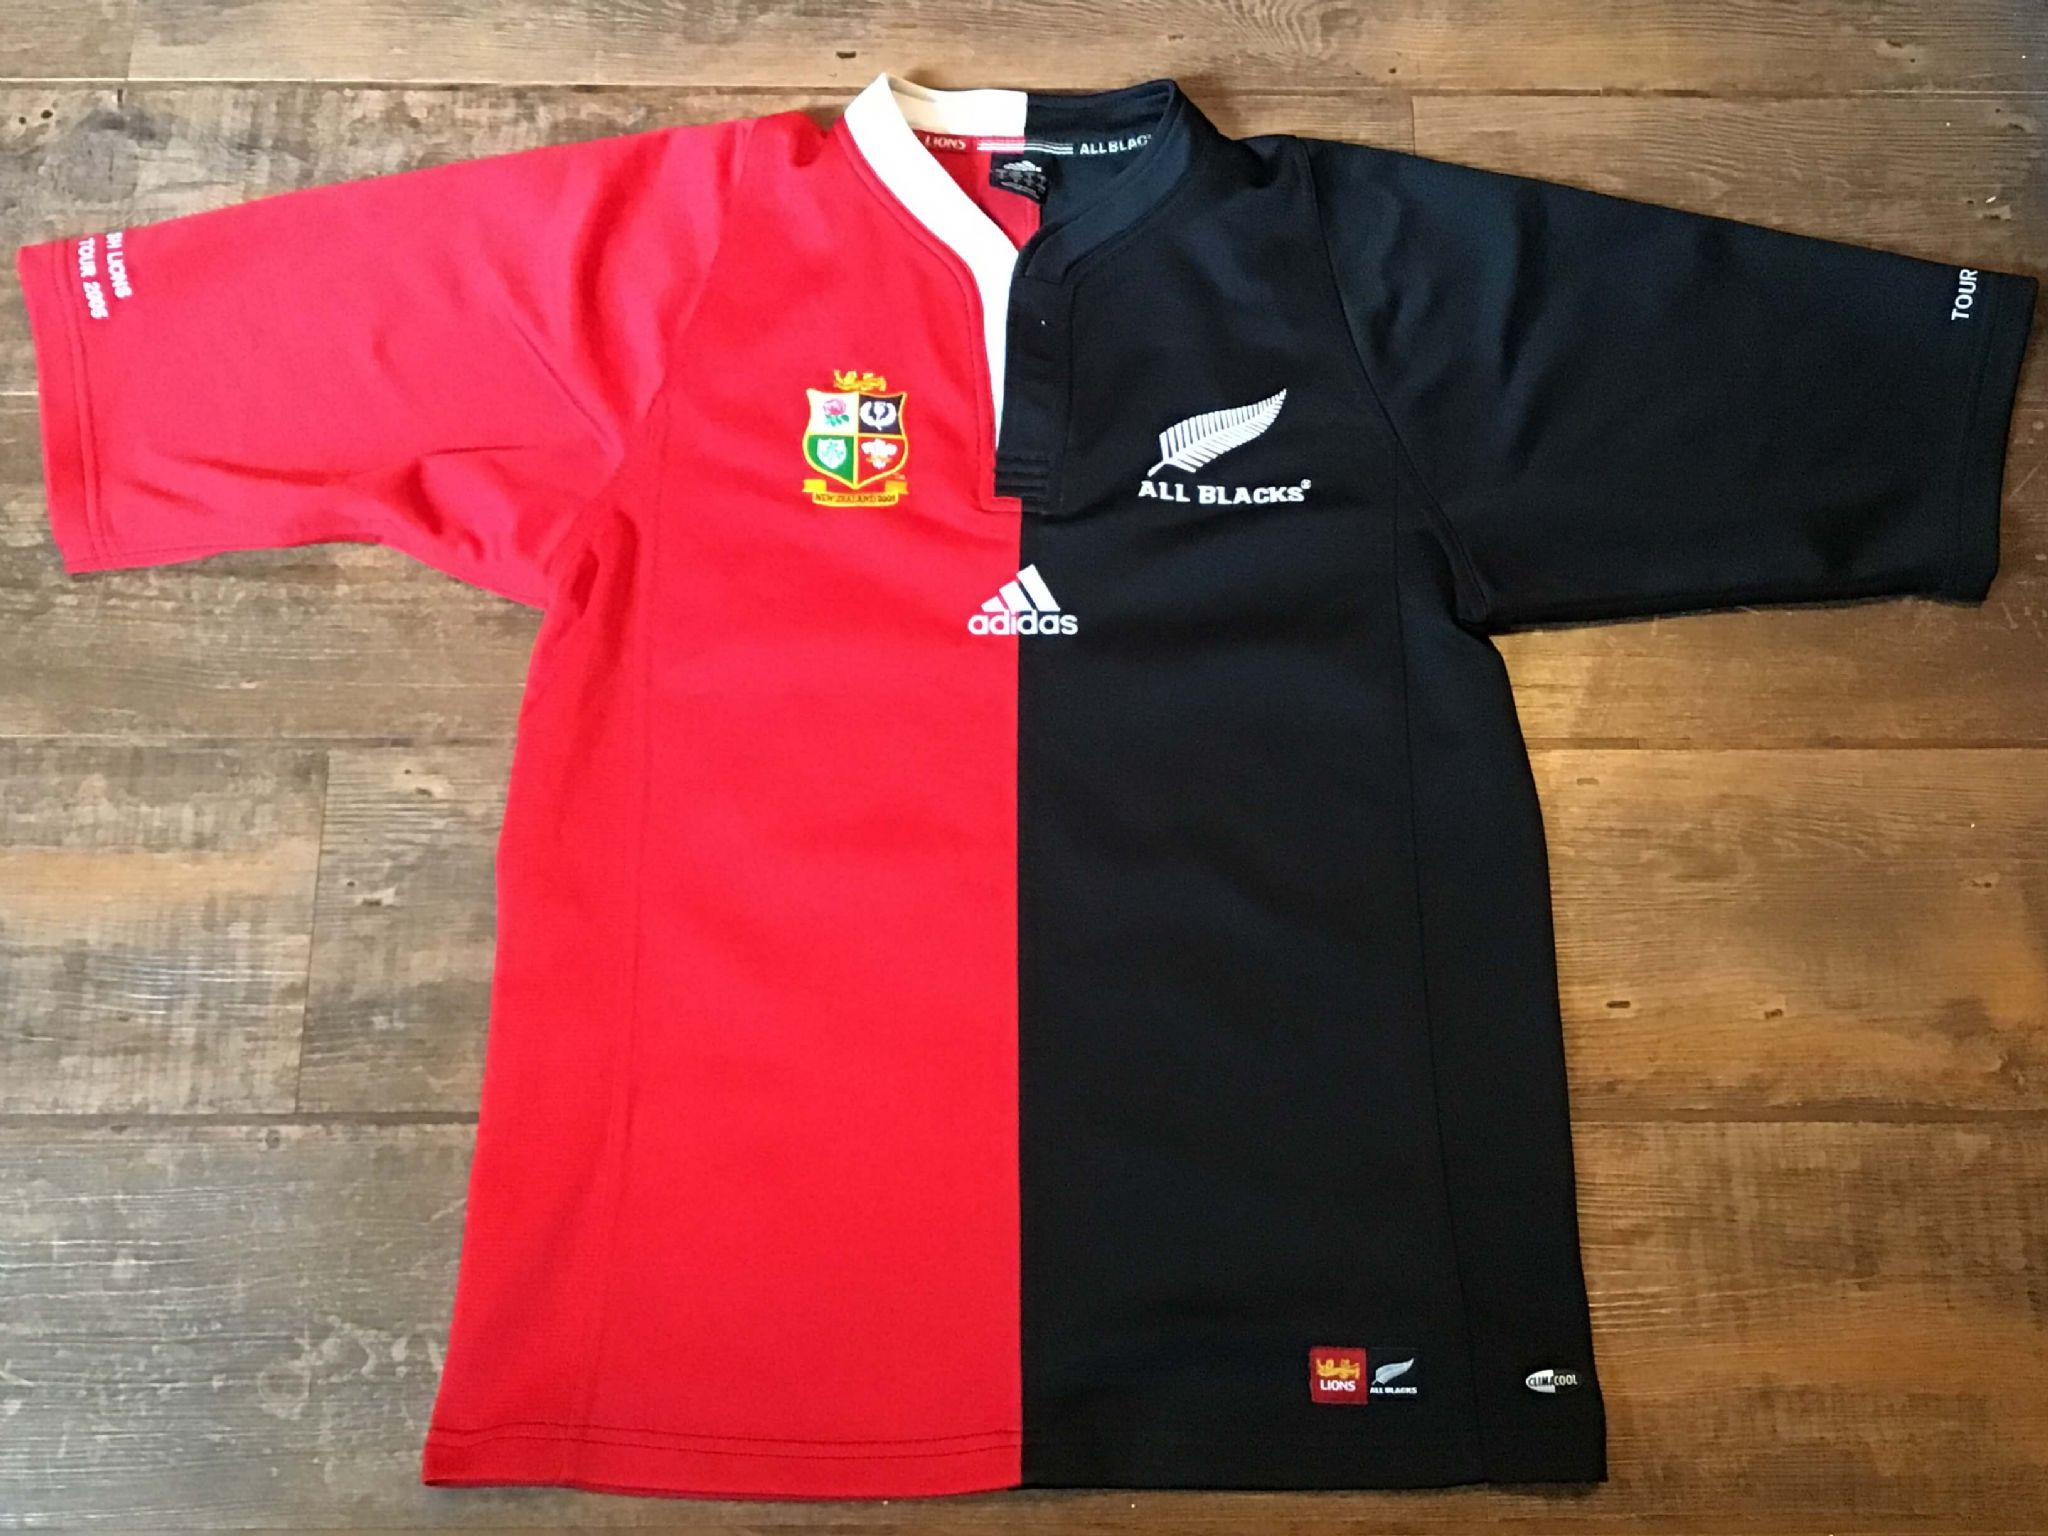 e8be90442e6 2005 British & Irish Lions New Zealand Ltd Edition Rugby Union Shirt Adults  Small All Blacks